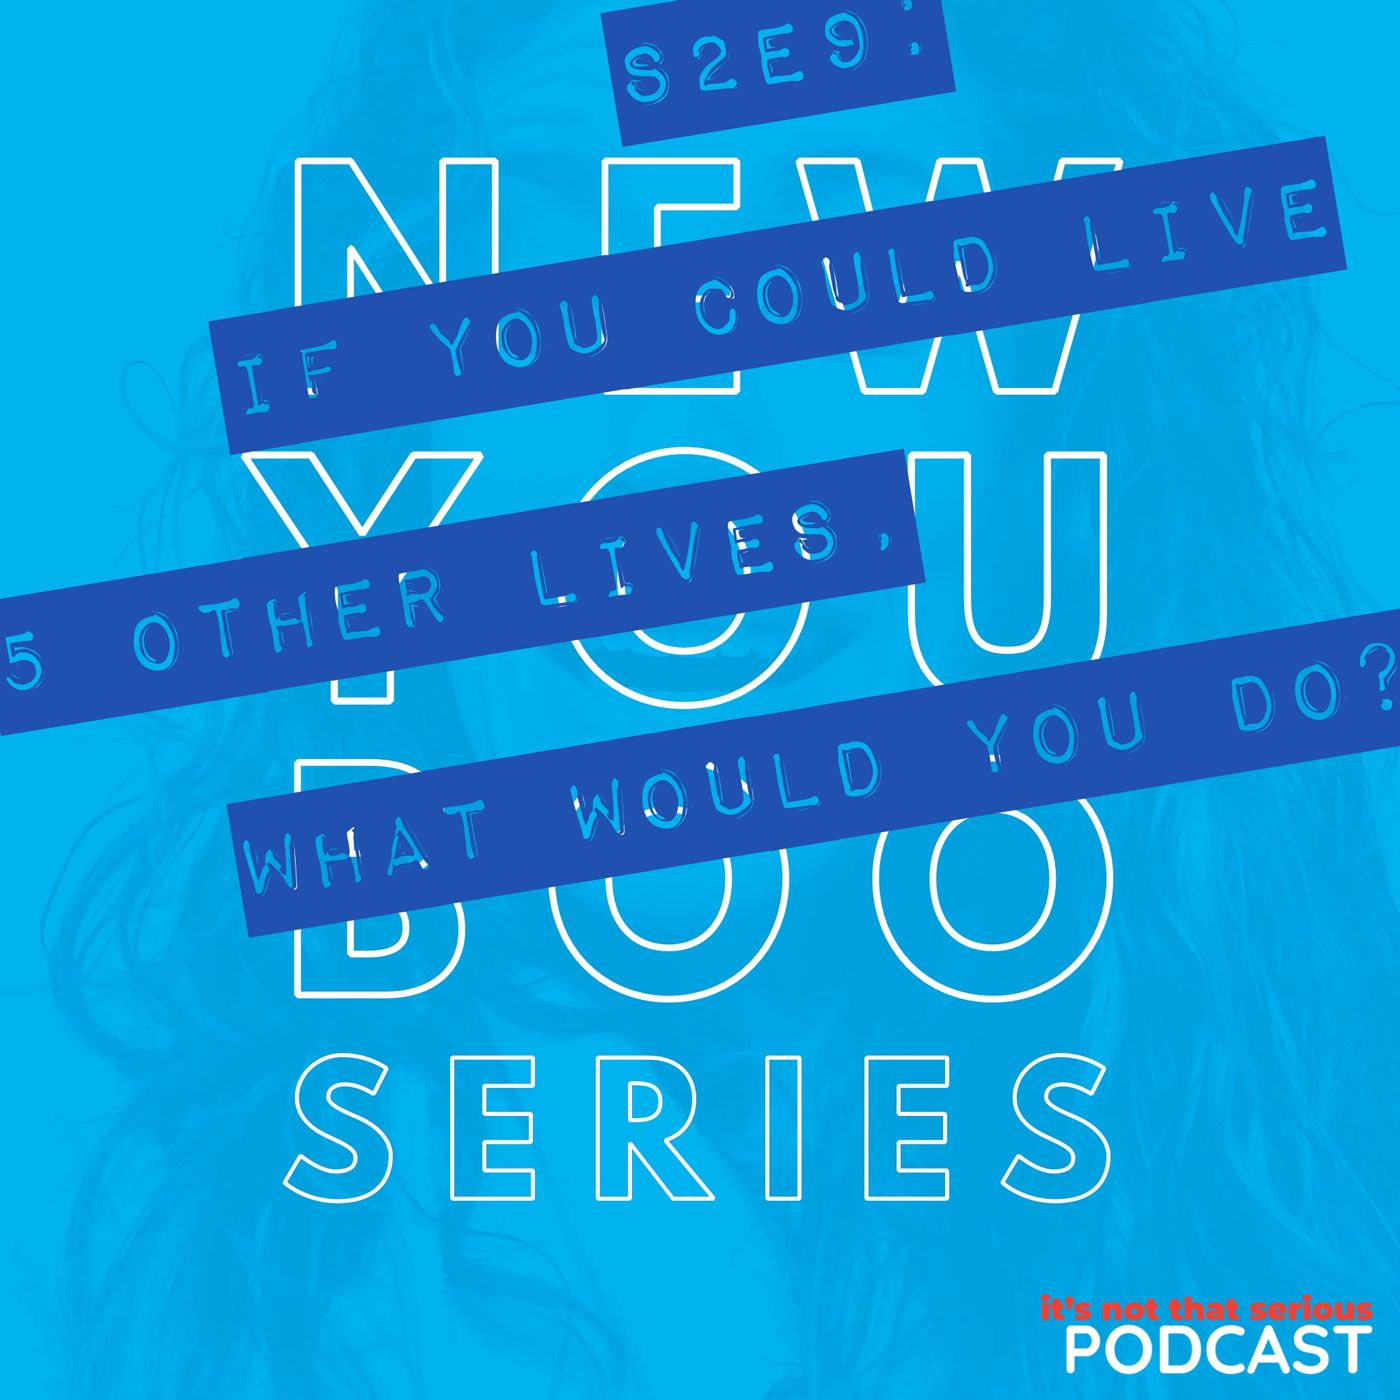 S2E9: If You Could Live 5 Other Lives, What Would You Do?   New You Boo Series